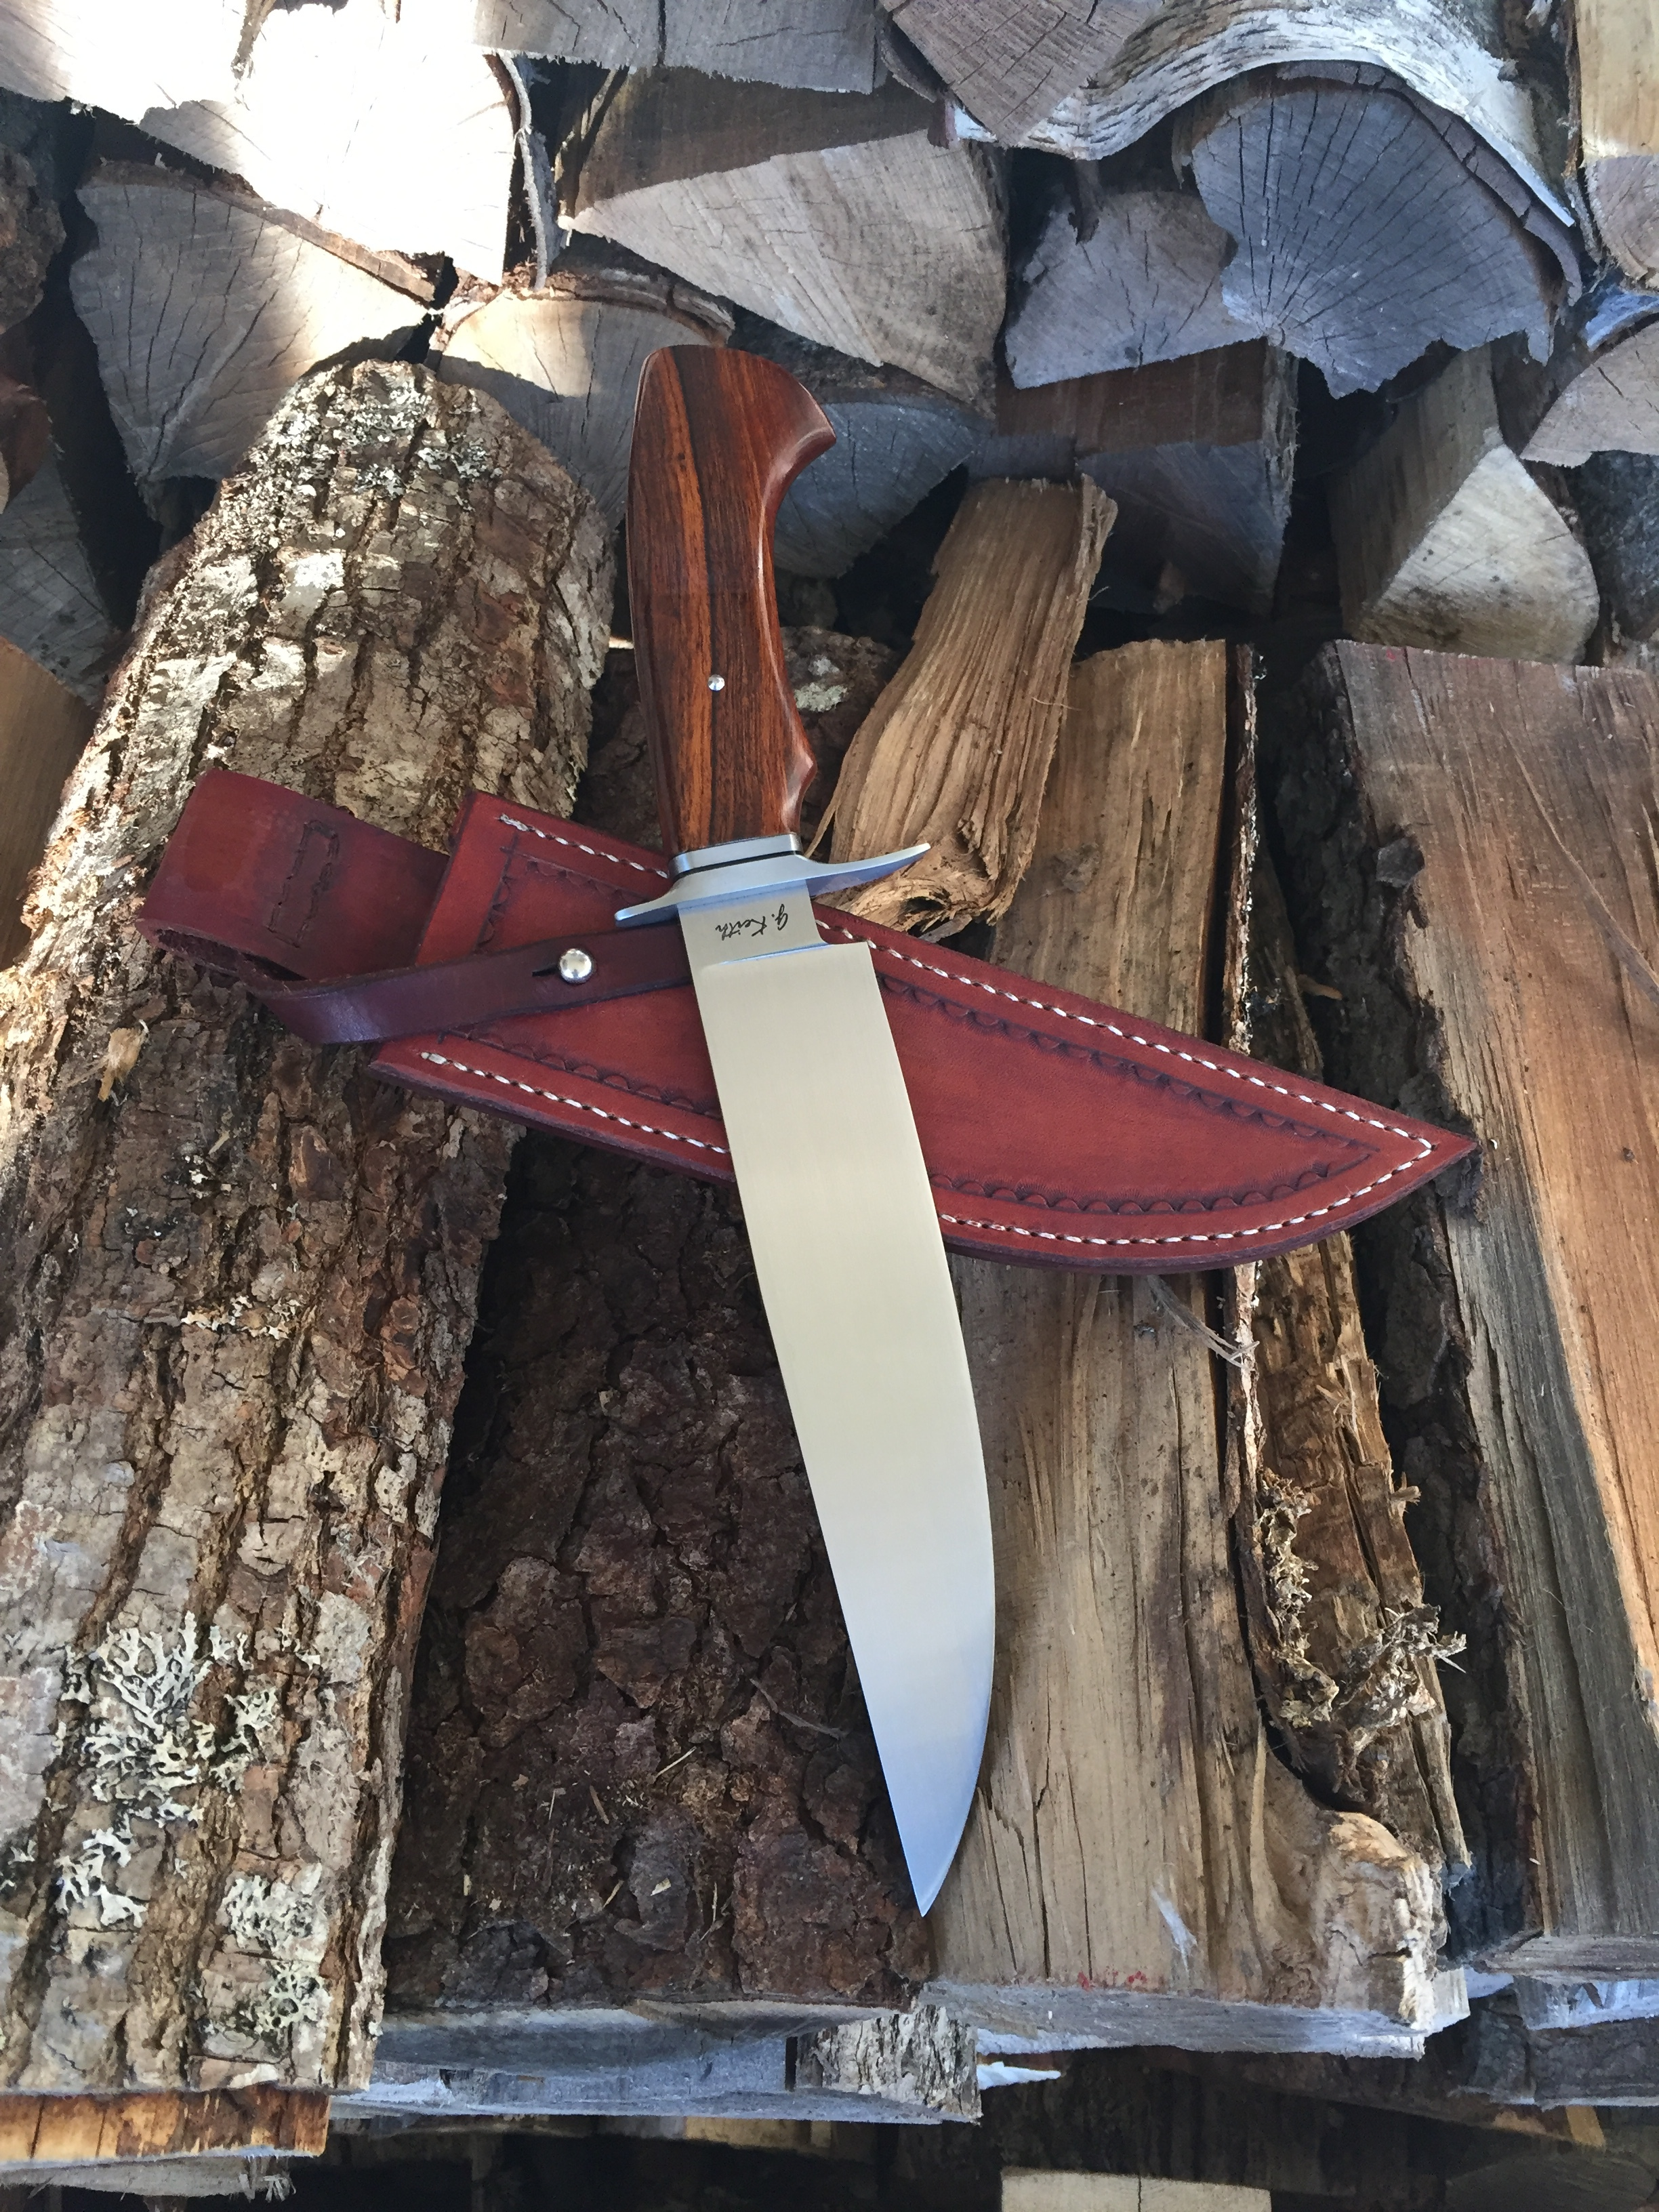 Damascus bowie 9 inch blade with sheath